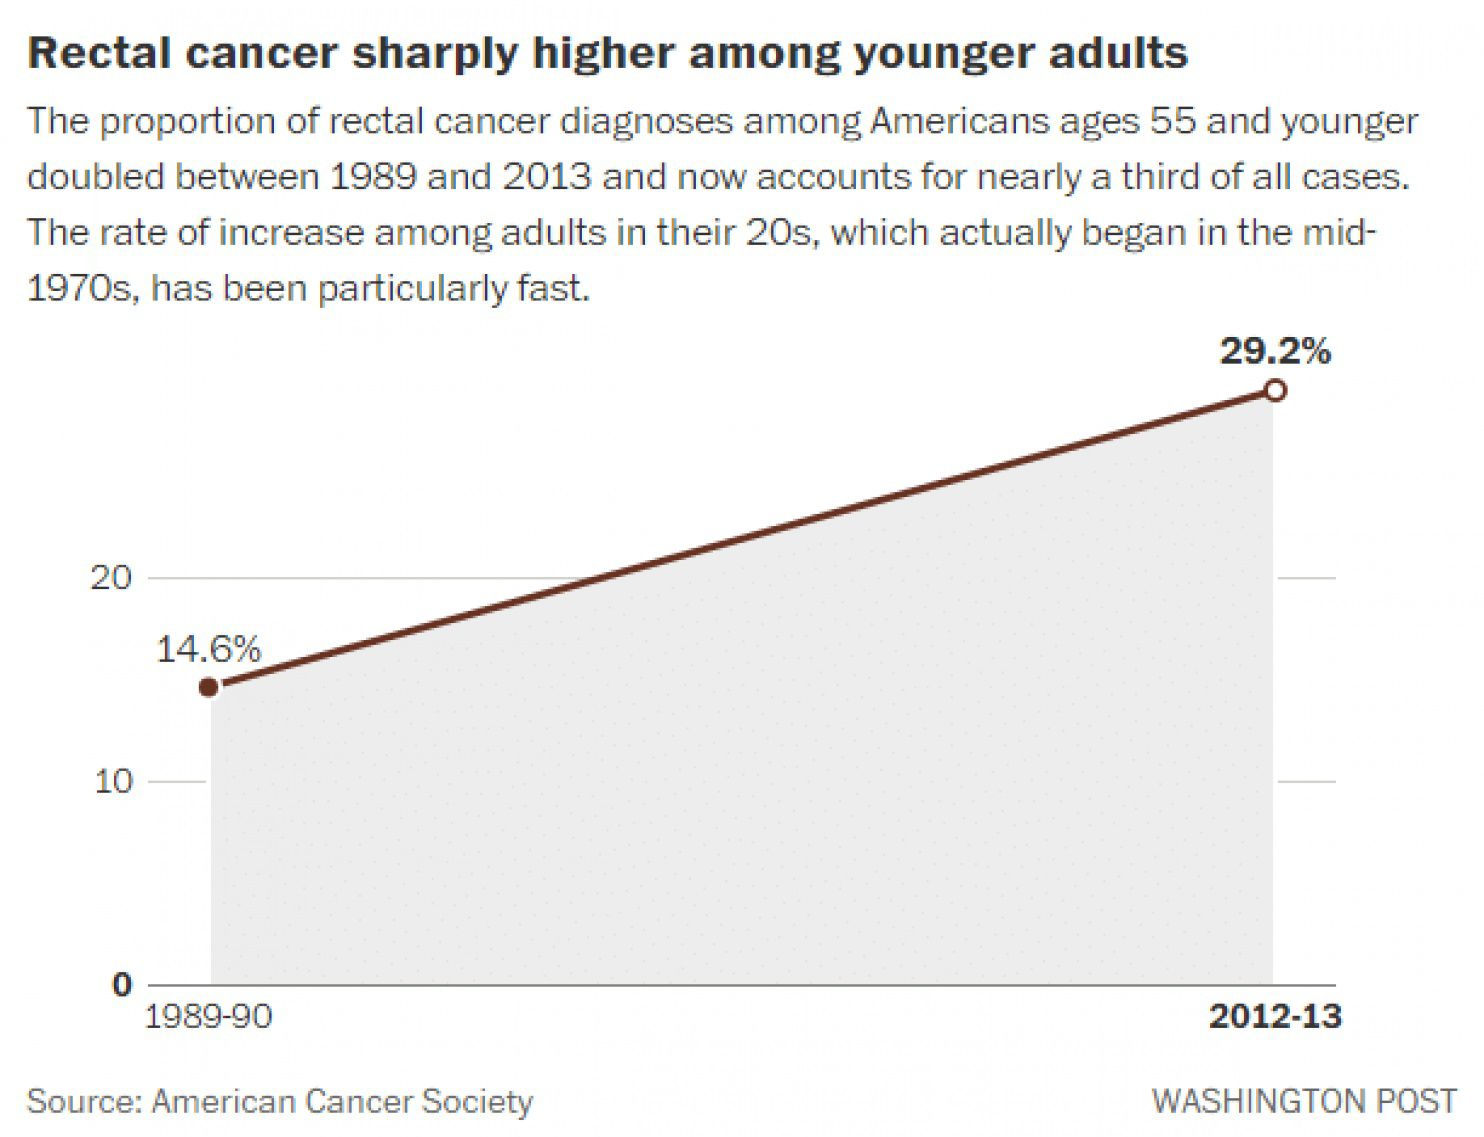 Forum on this topic: Colorectal Cancer Rates on the Rise in , colorectal-cancer-rates-on-the-rise-in/